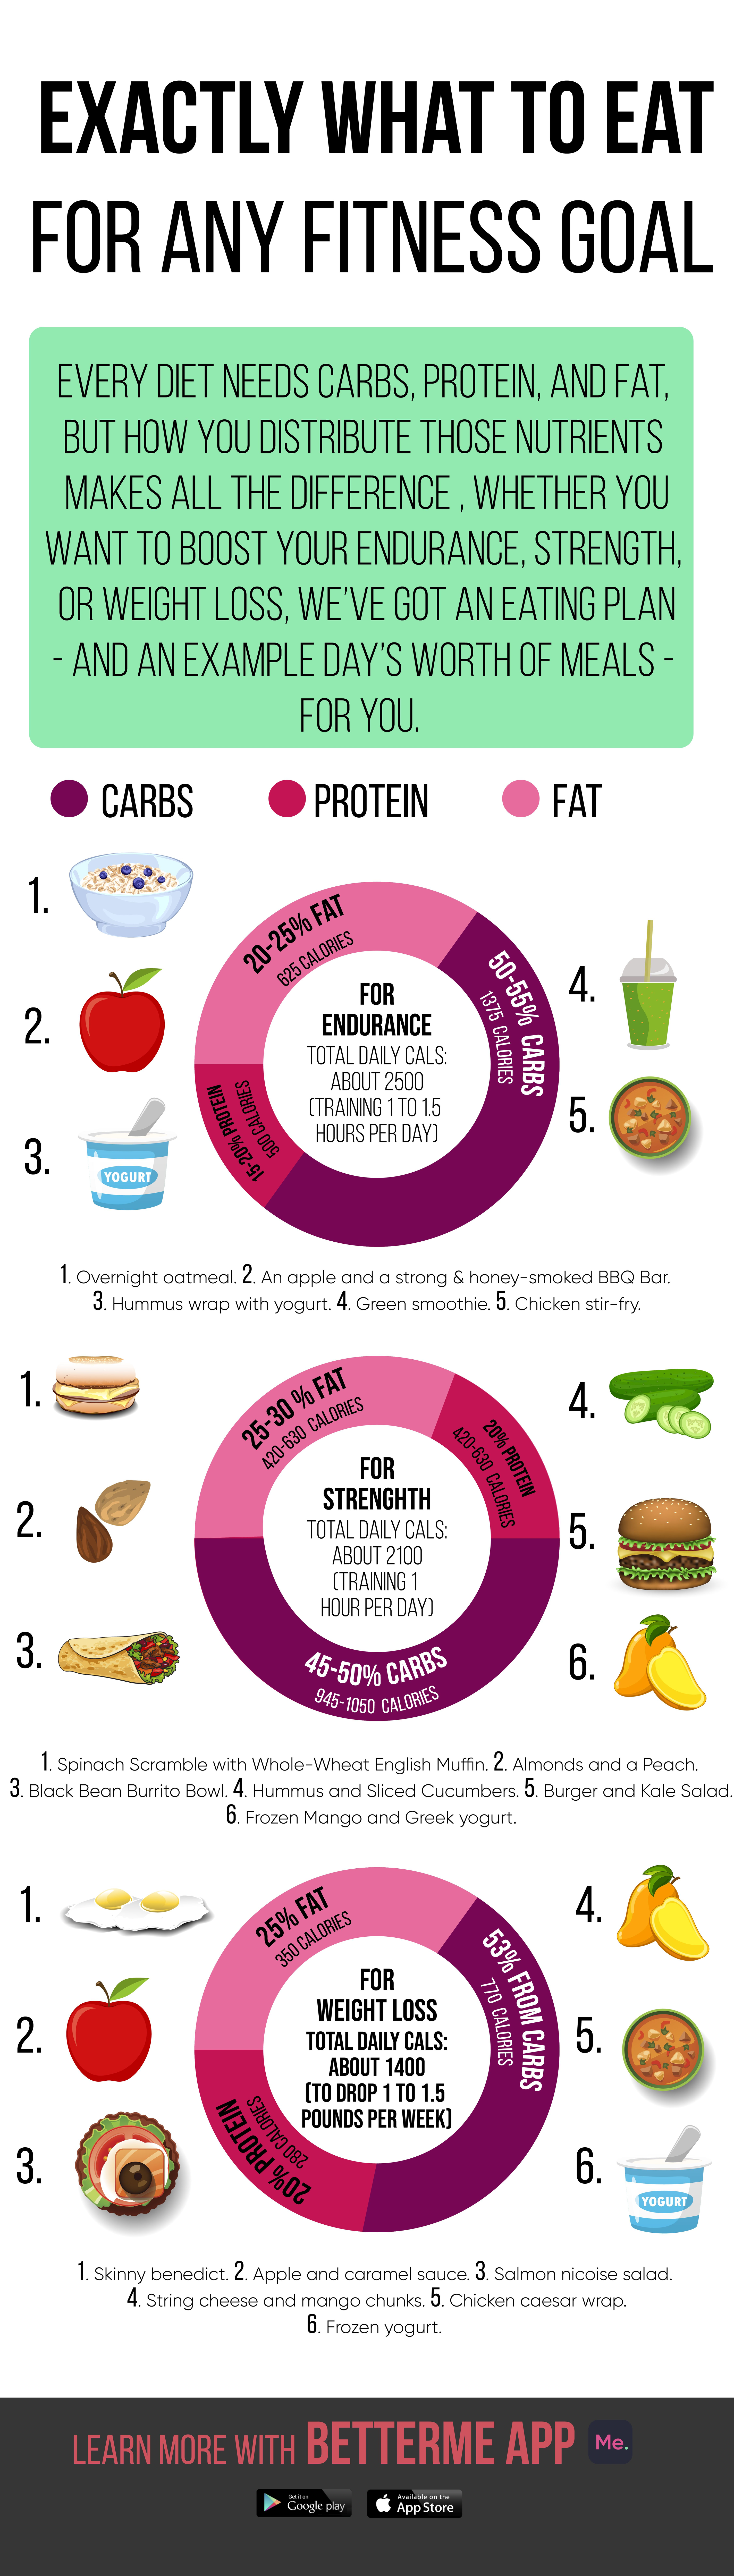 The Right Way to Lose Weight